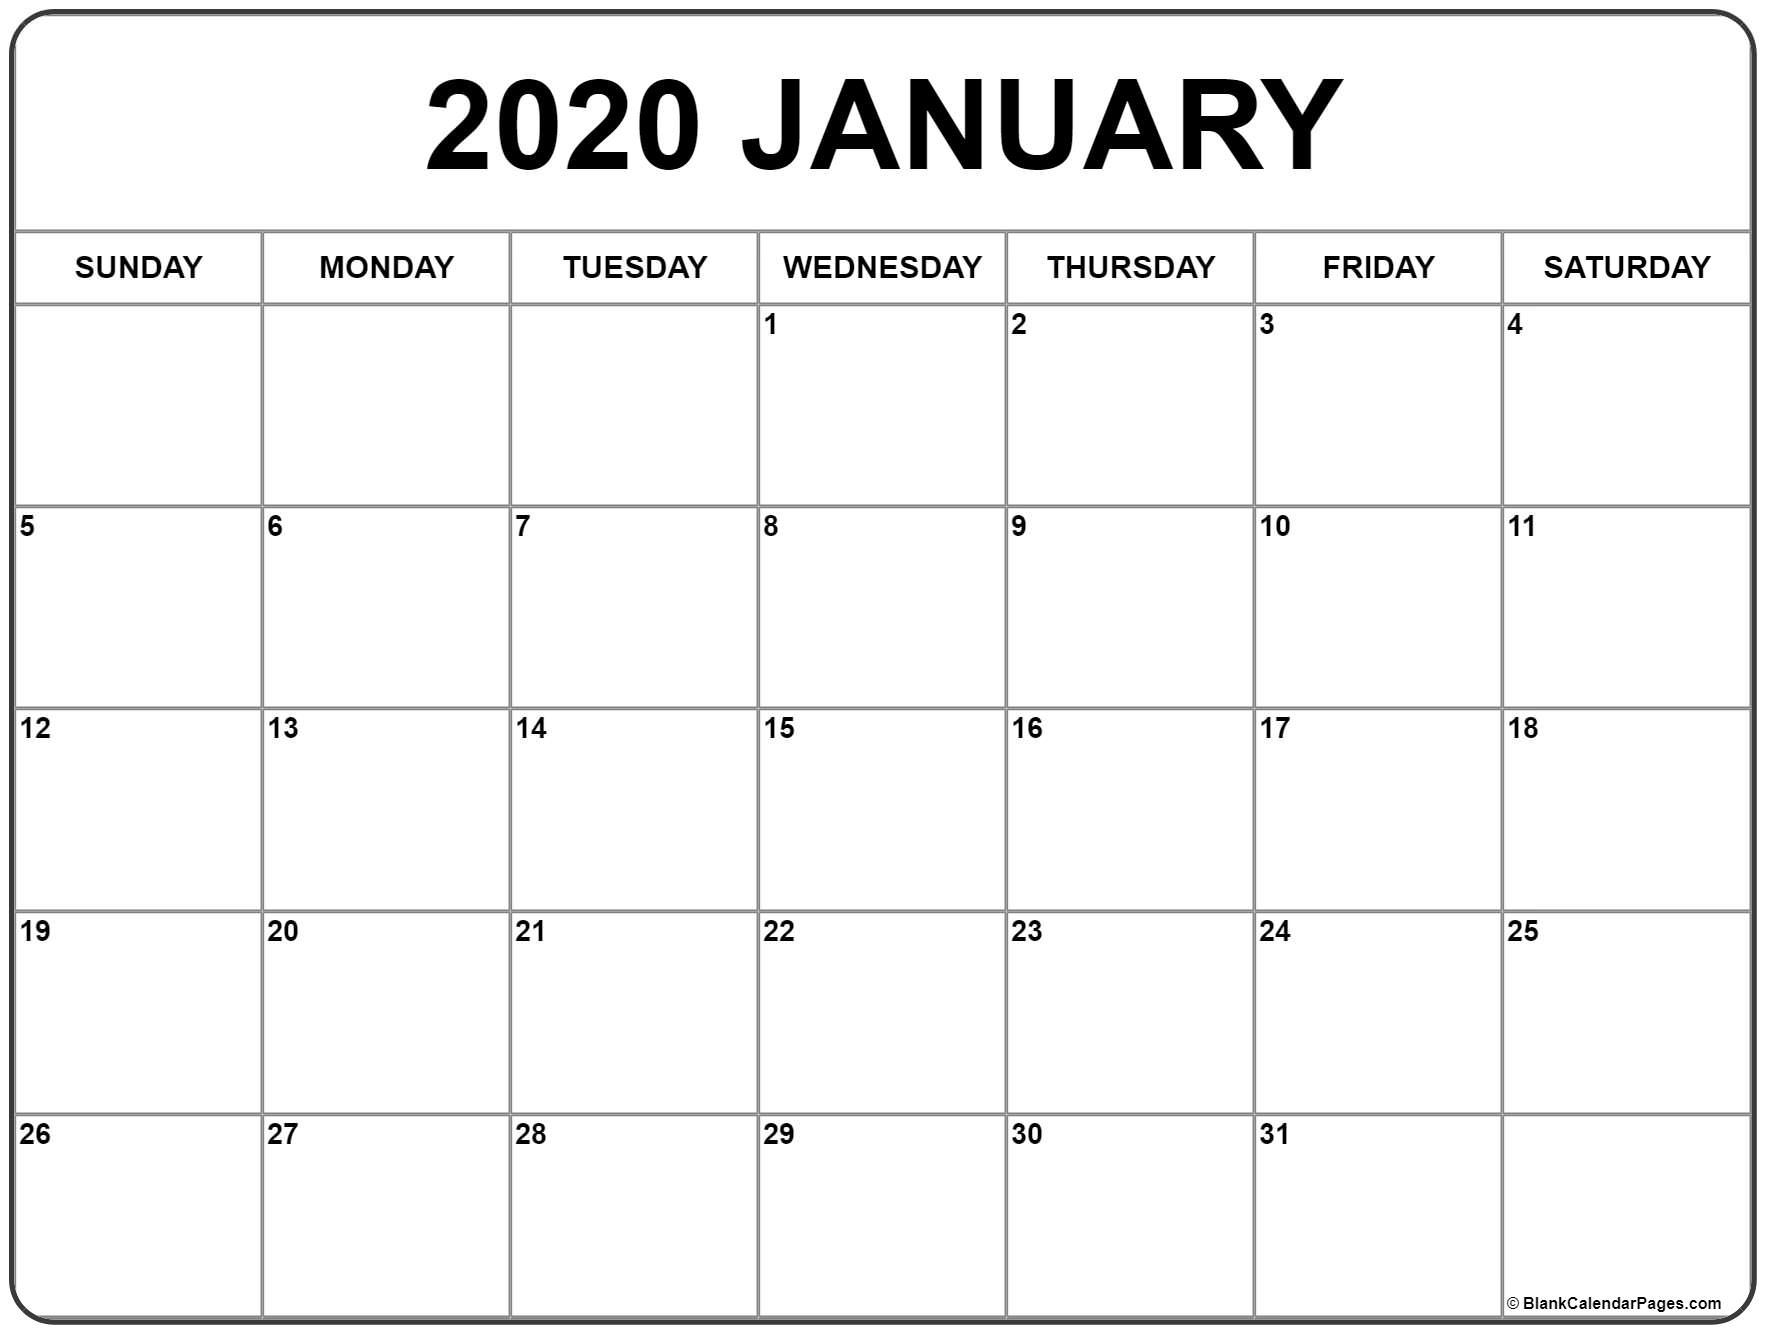 January 2020 Calendar | Free Printable Monthly Calendars in Print Free 2020 Monthly Calendars Without Downloading